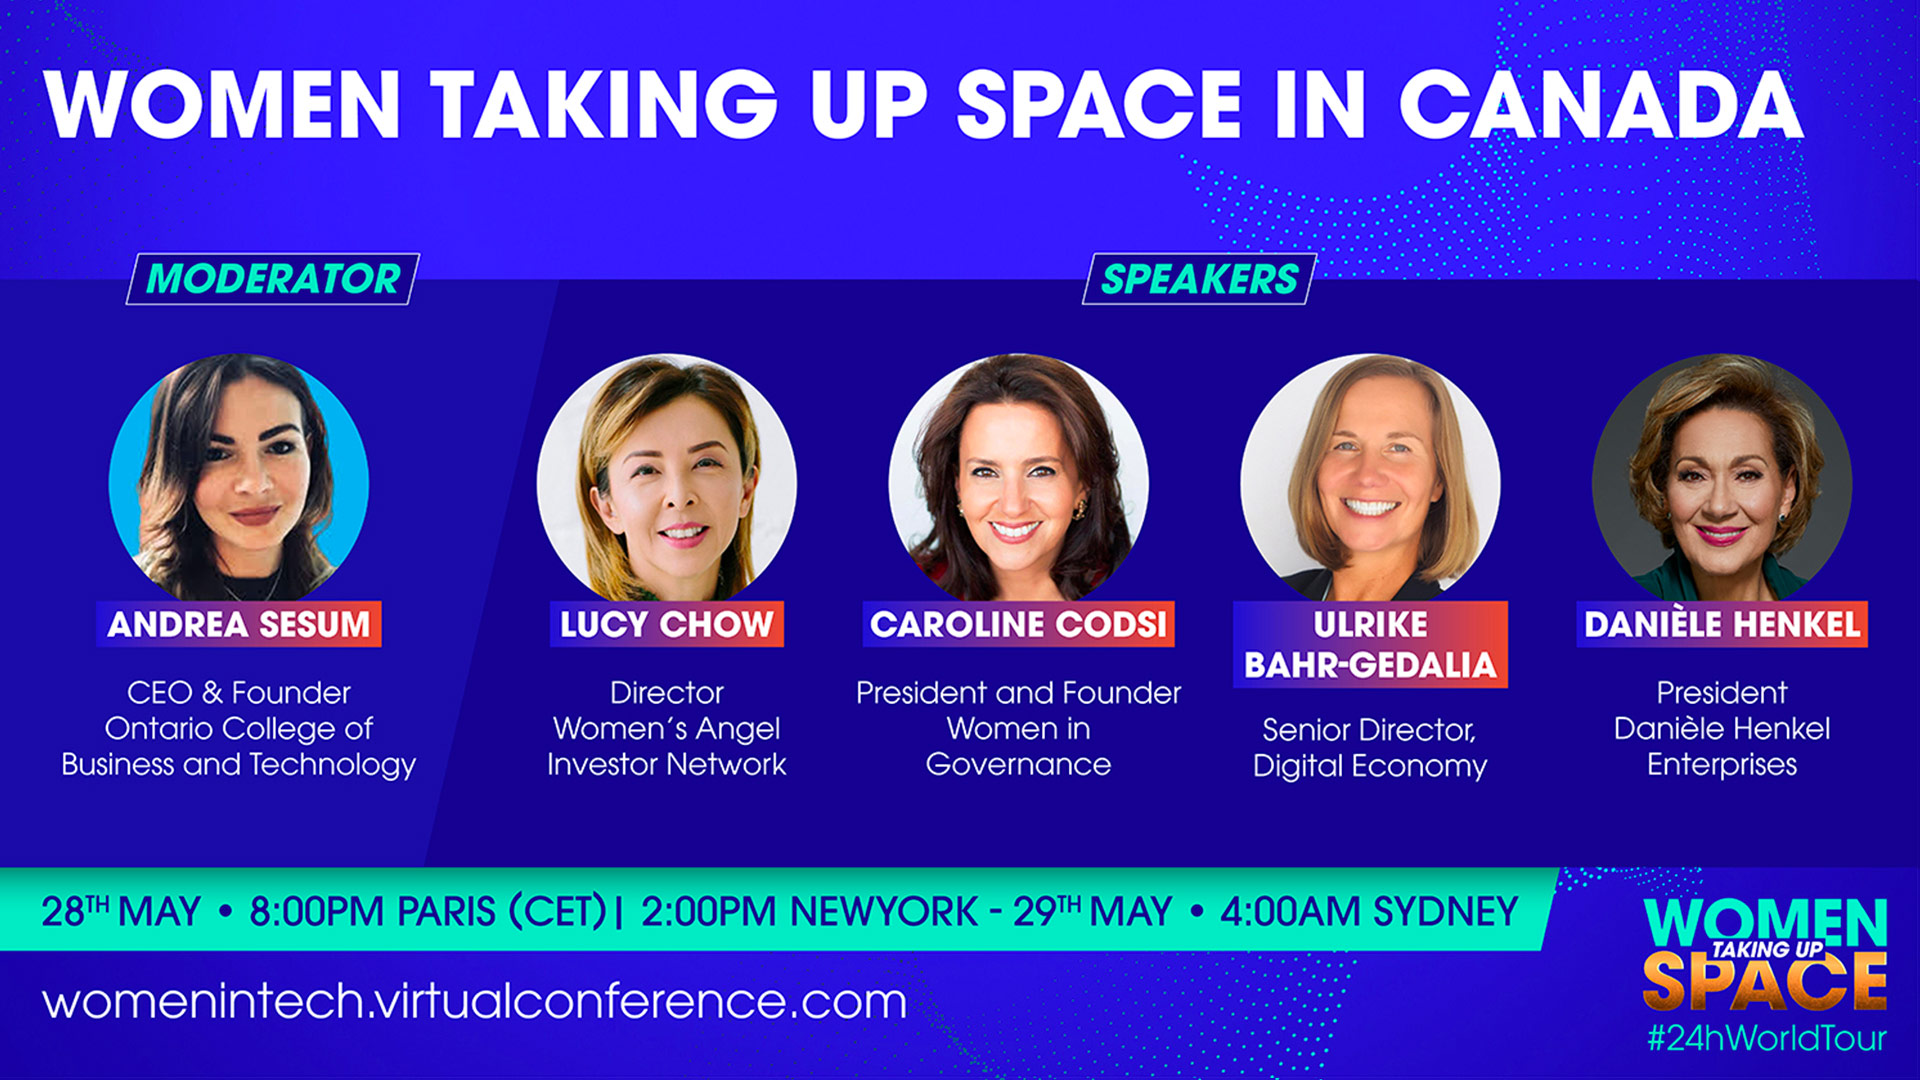 Women taking up space in Canada